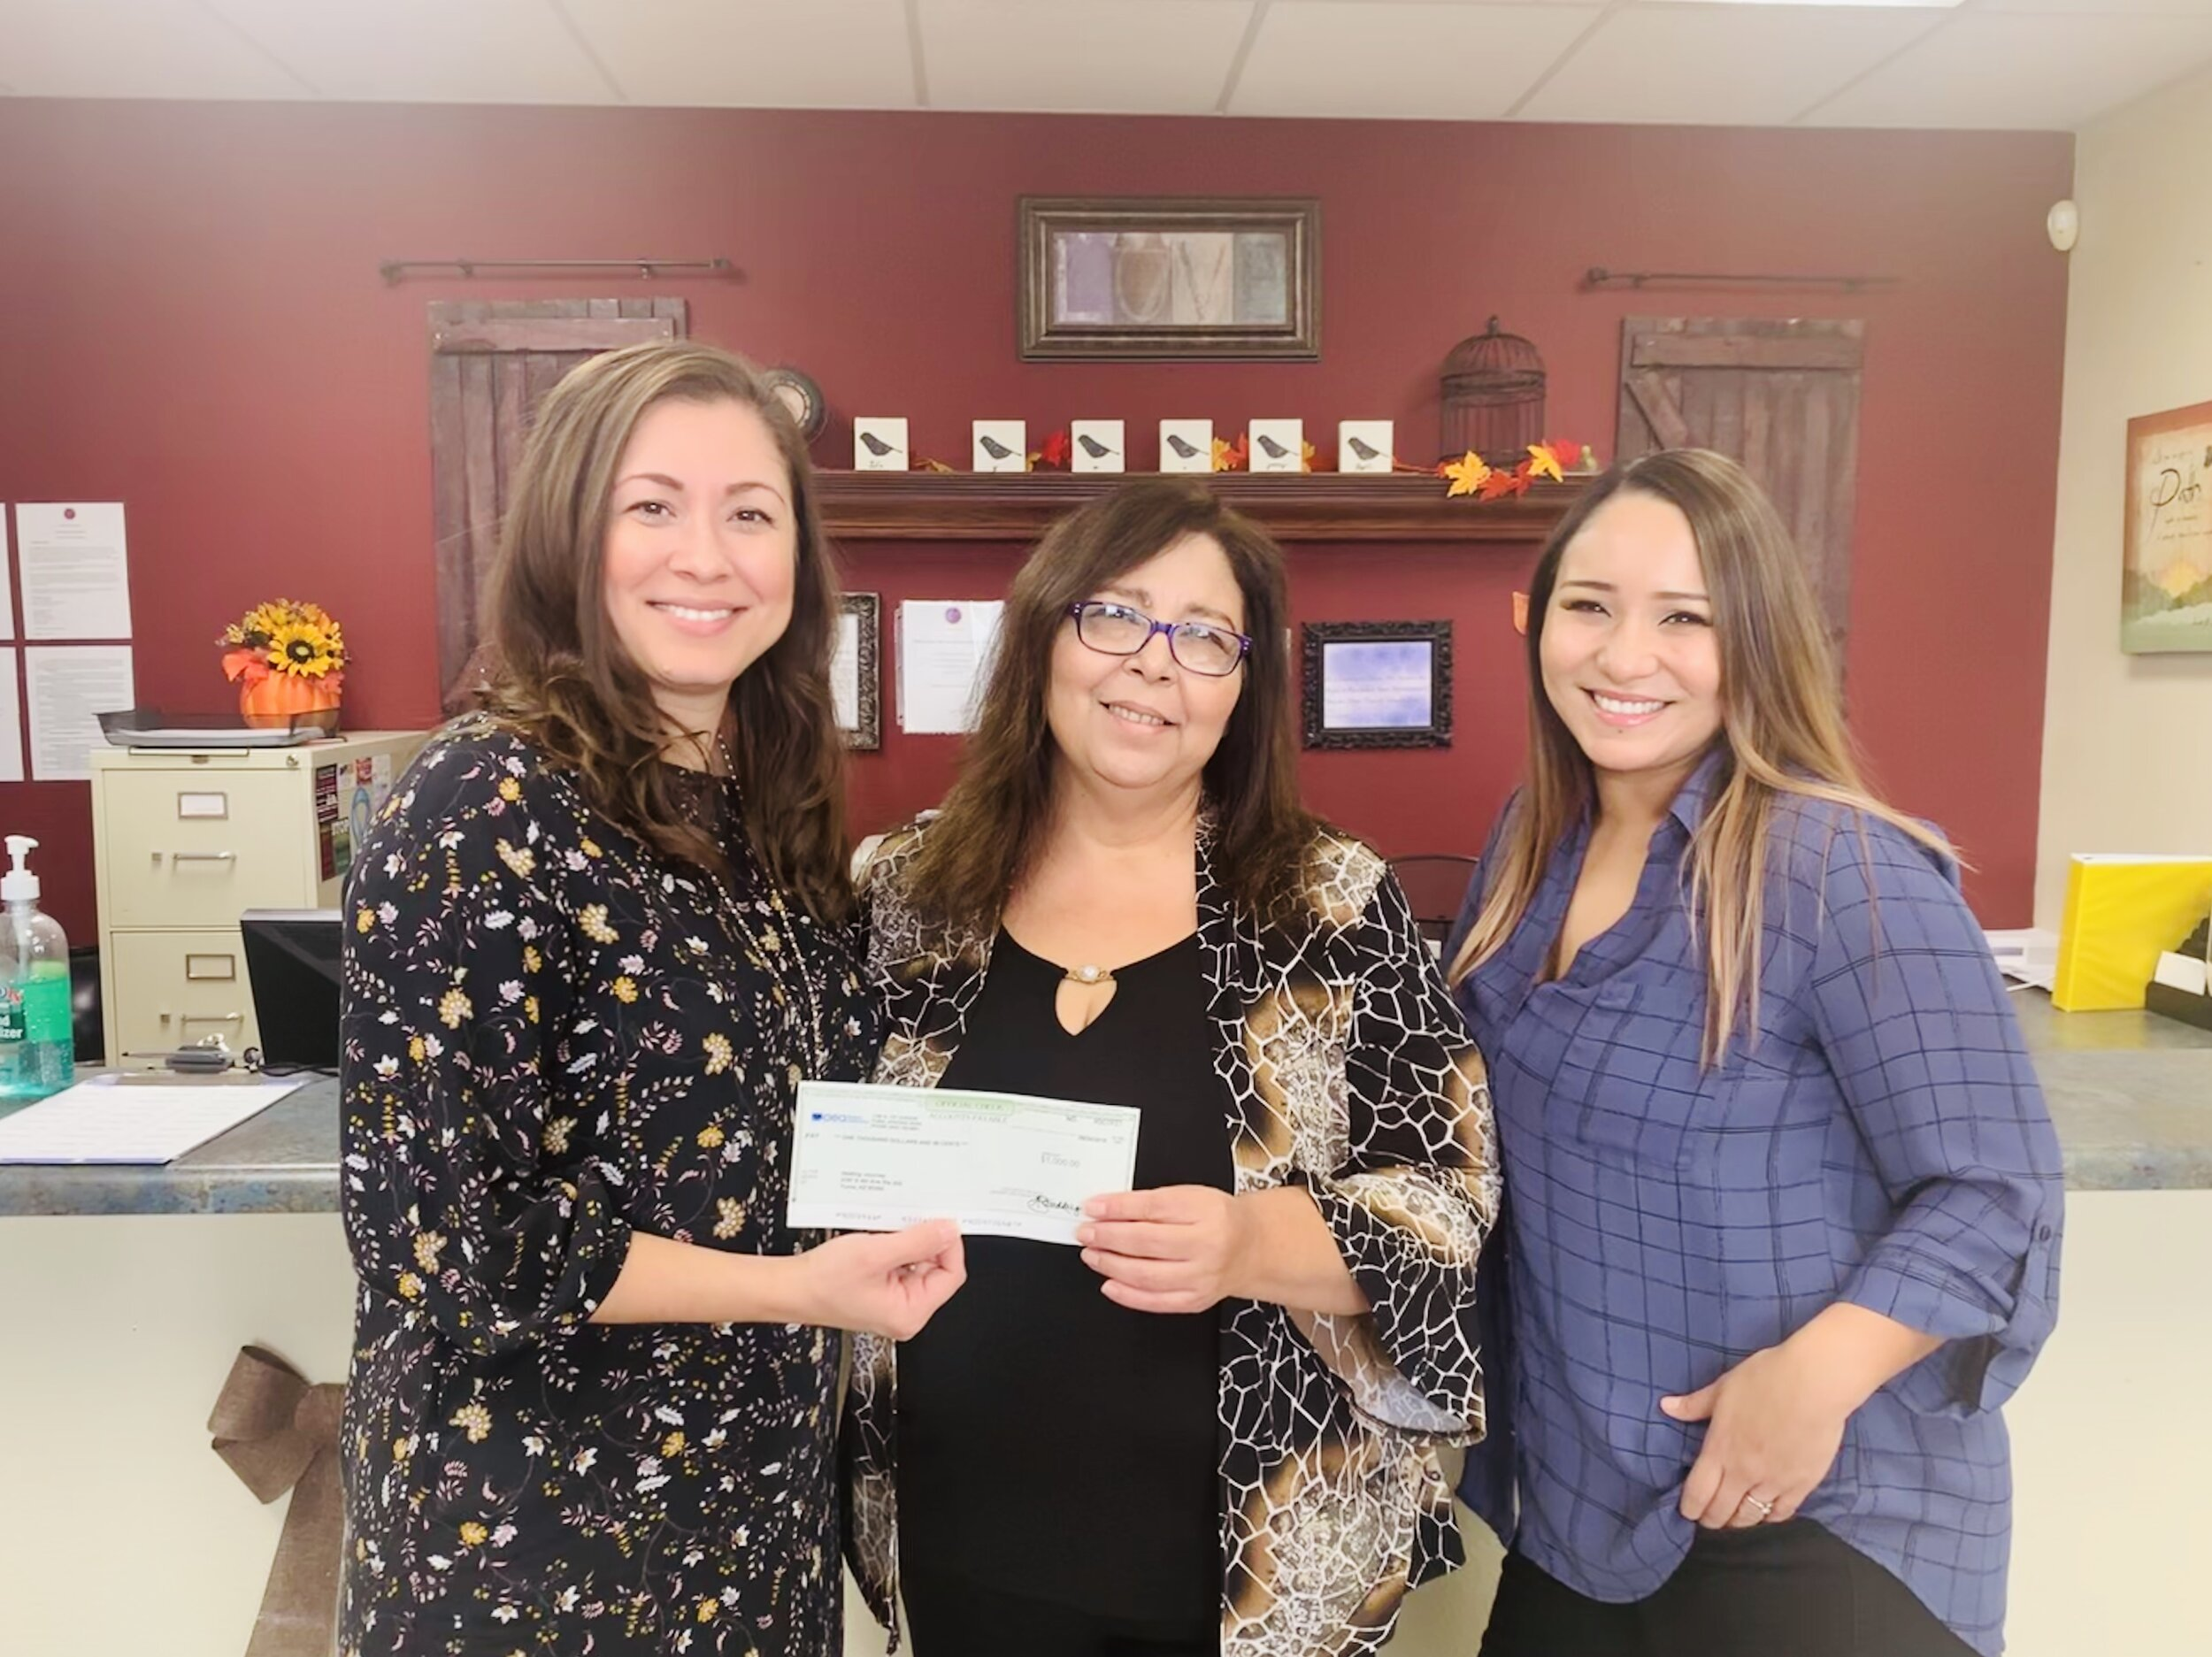 A big THANKS to AEA Federal Credit Union for their donation to assist Healing Journey's Youth Programs. We are so grateful to have such an amazing team support our mission, we couldn't do the work we do without the support from the Yuma Community!  Check out AEA community & outreach page:    https://www.aeafcu.org/about/community.shtml